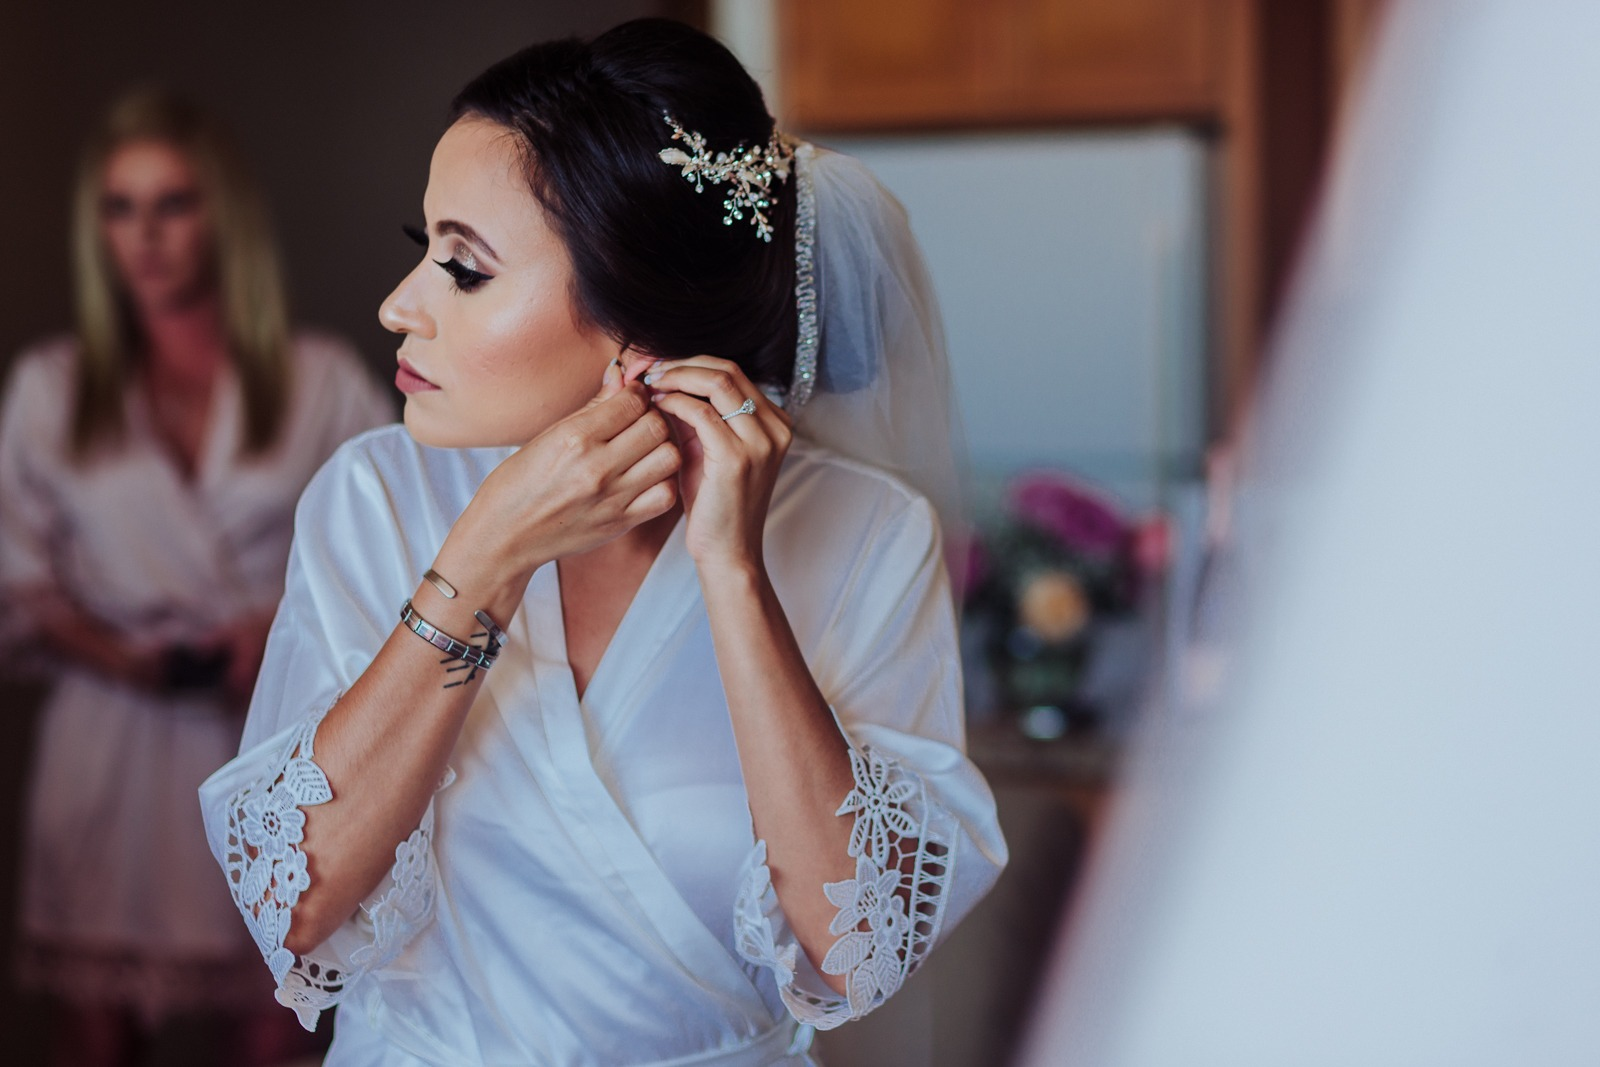 bride-earring-detail-gift-veil-ready-getting ready